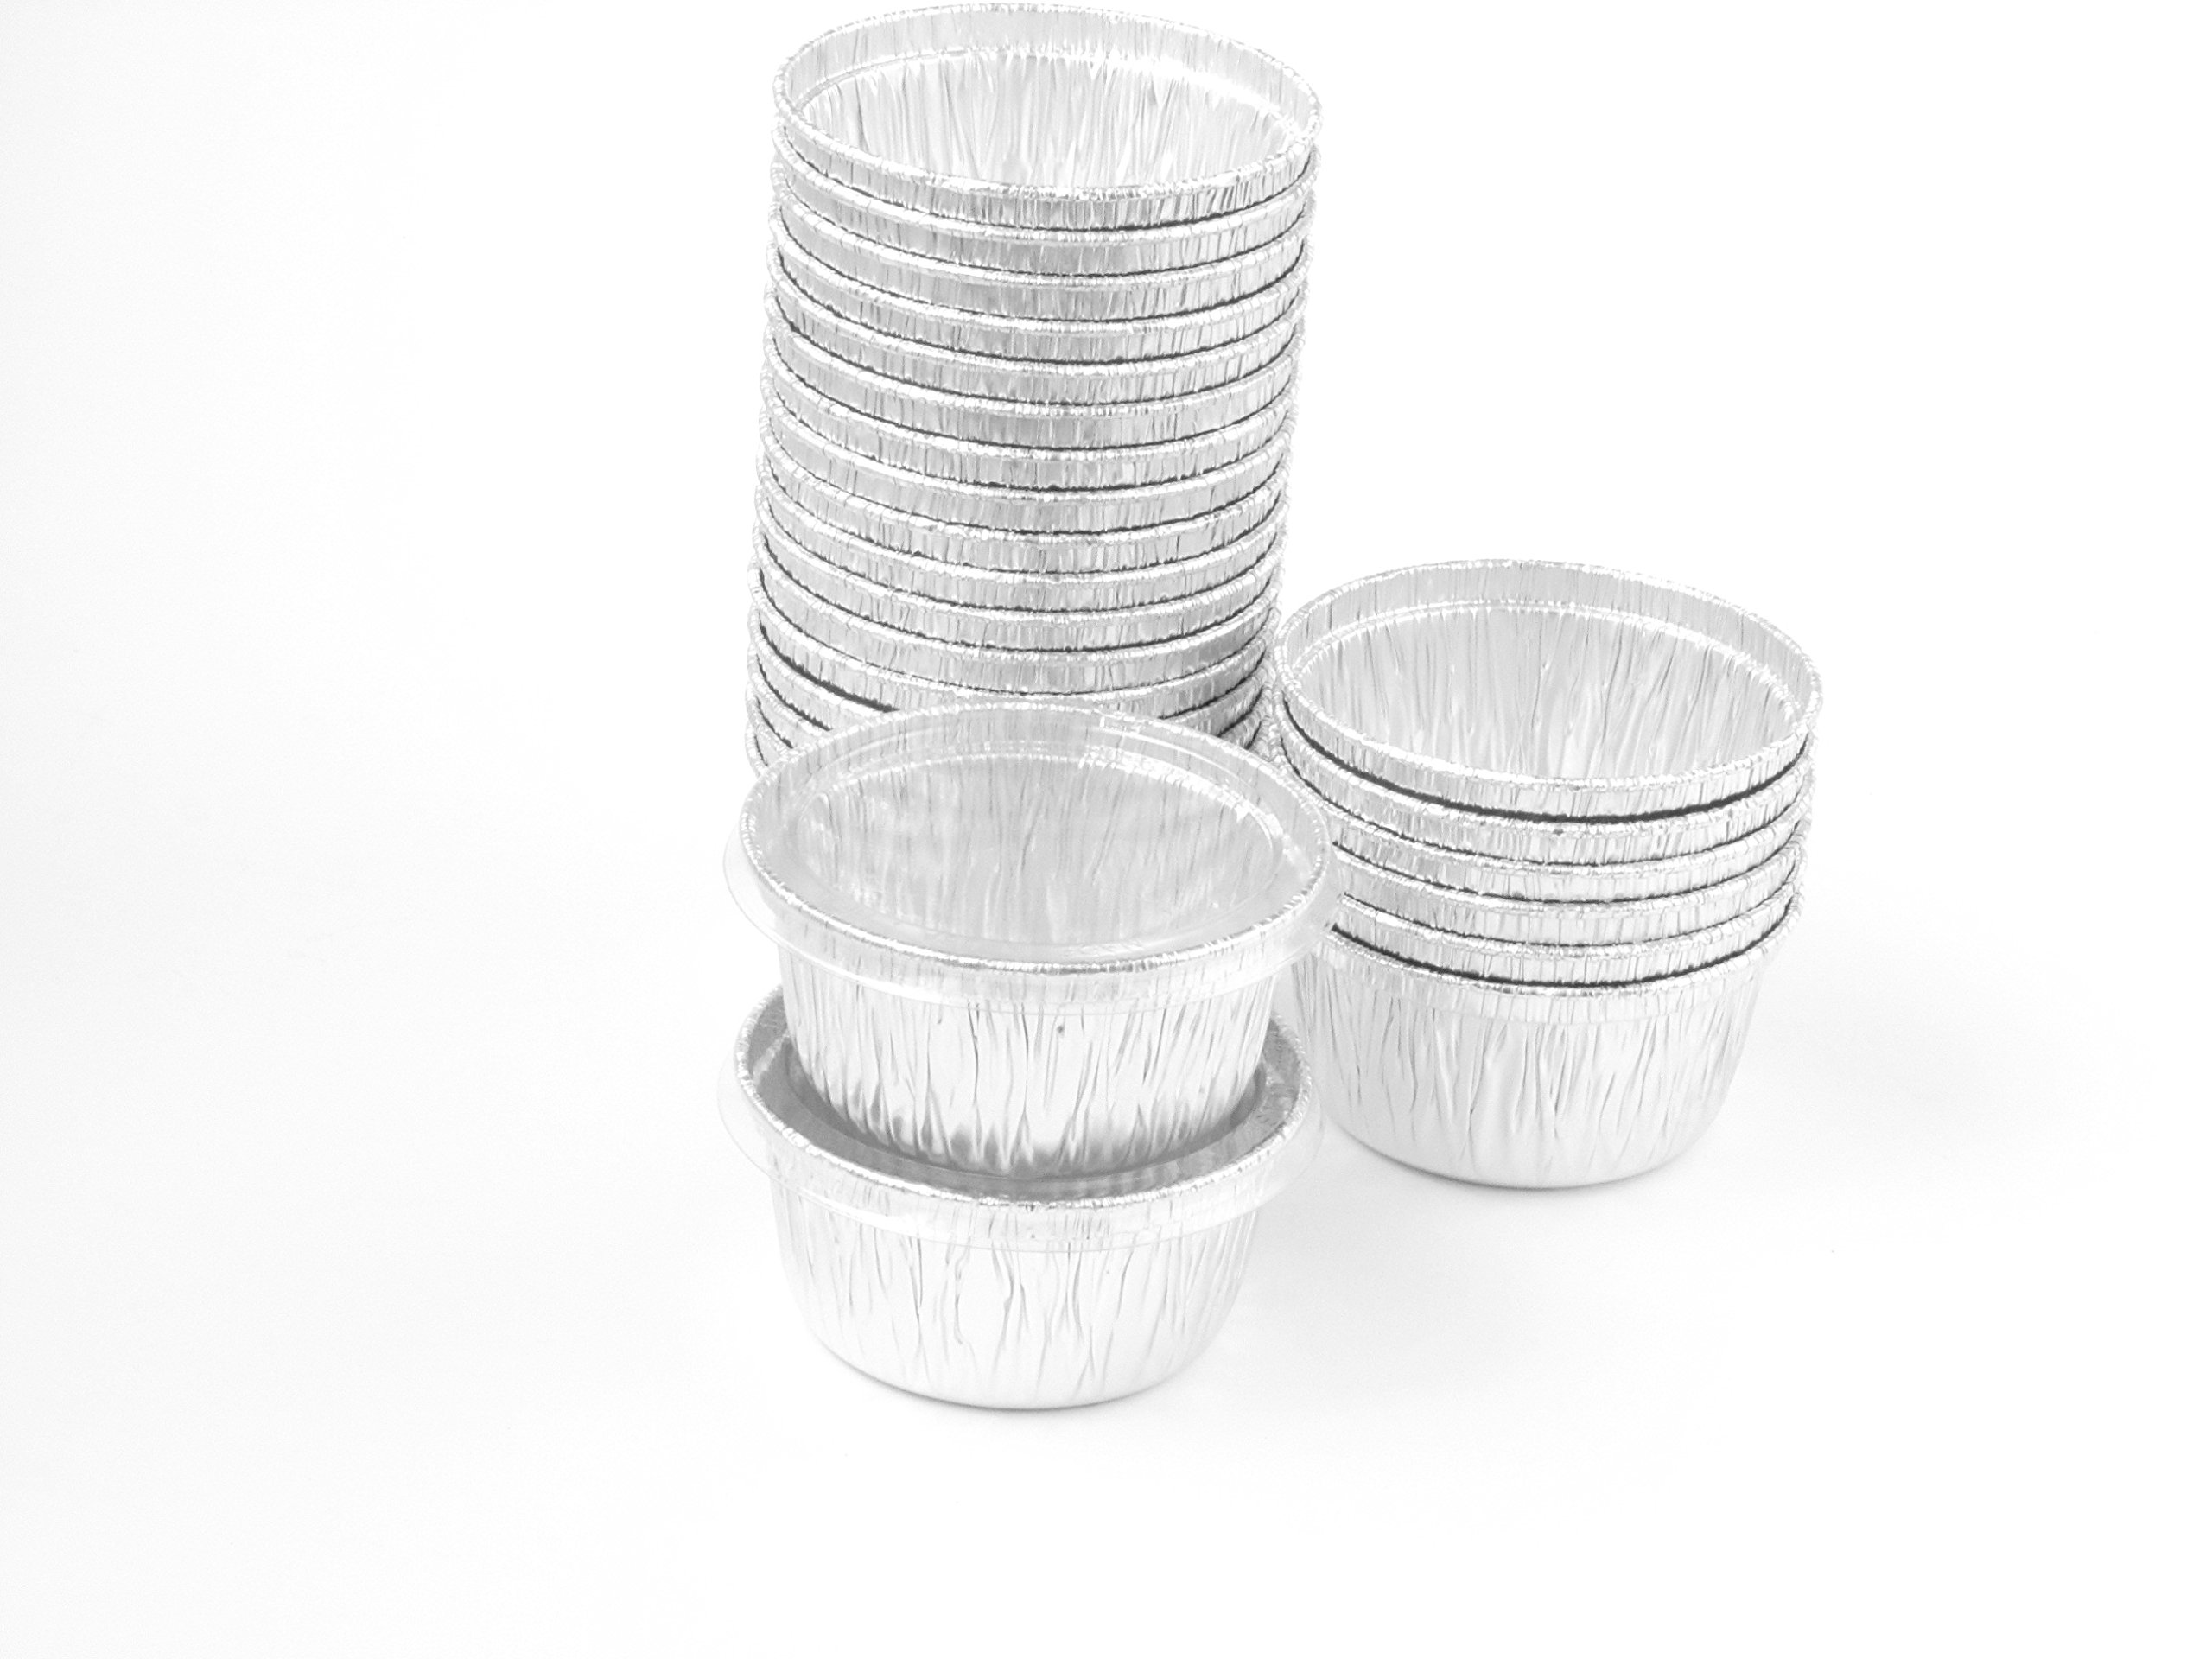 Disposable Aluminum 4 Oz Ramekins/foil Cups w/ Clear Snap on Lid #1400p (100)